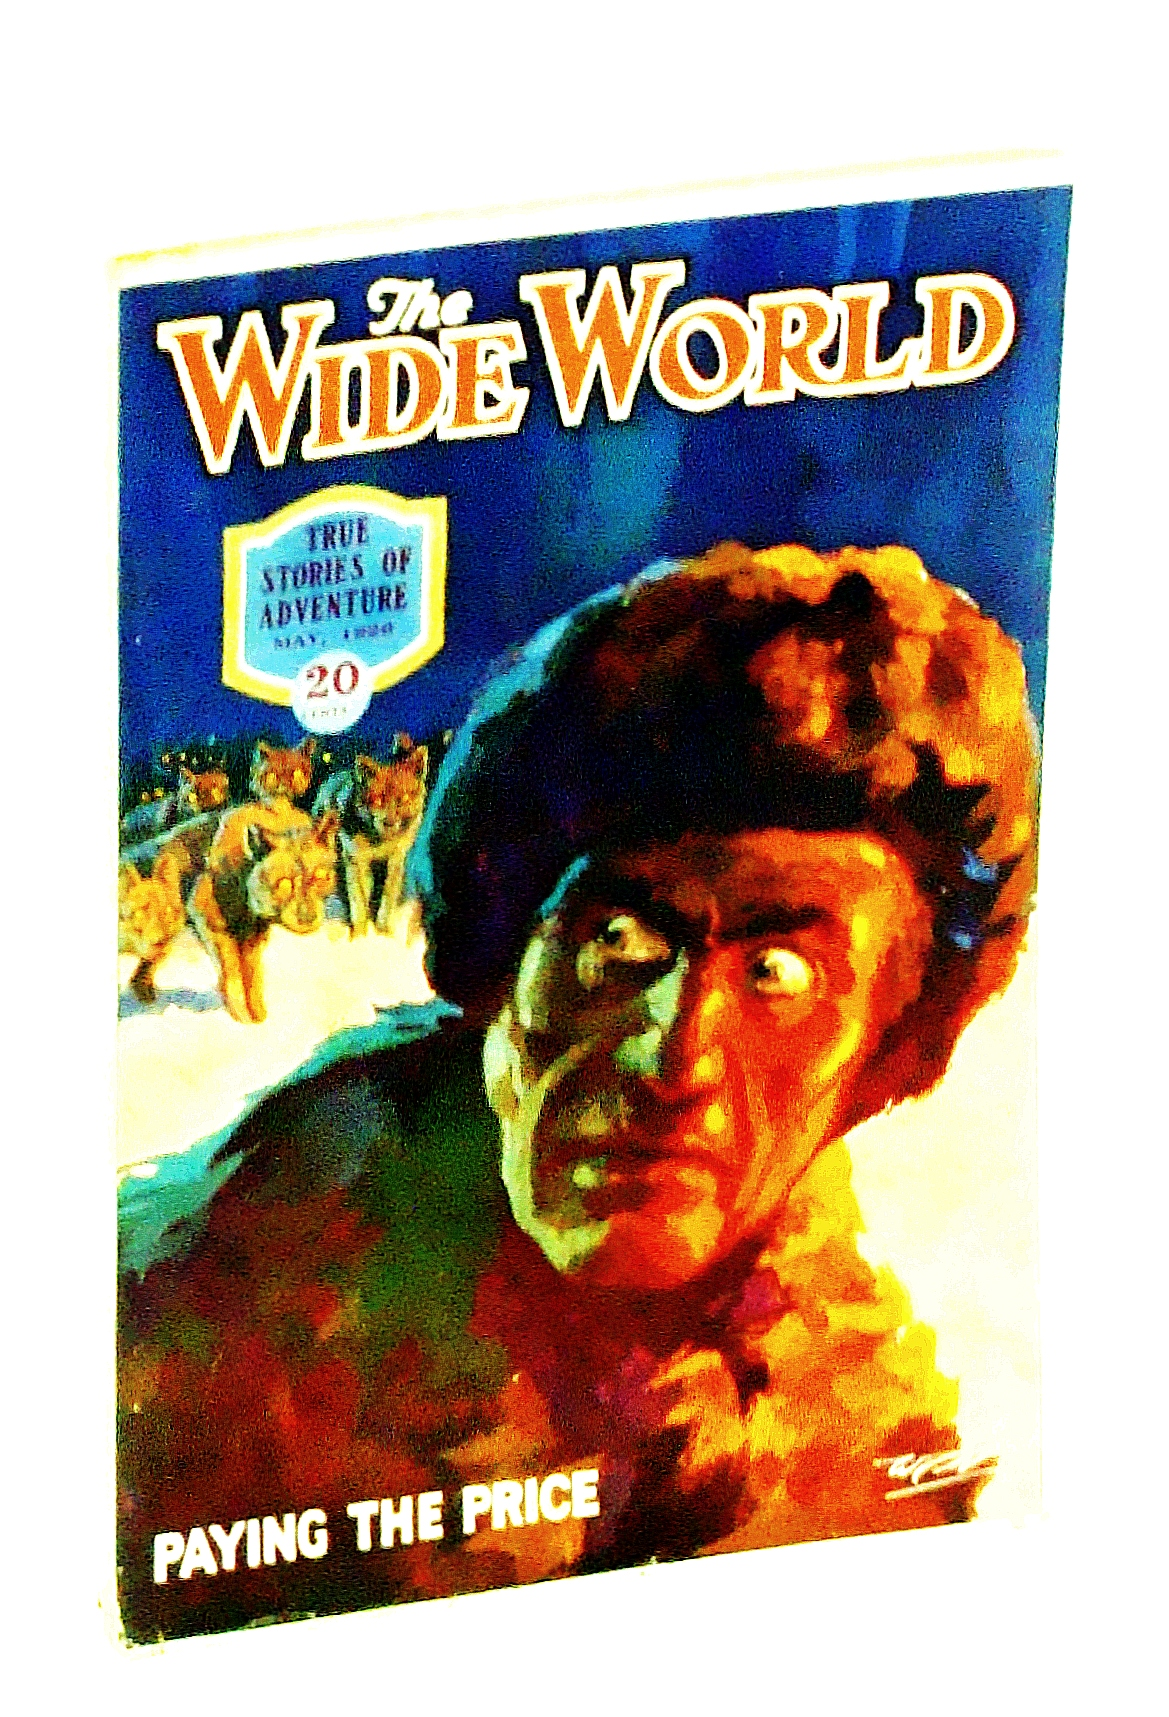 Image for The Wide World Magazine - True Stories of Adventure, May 1926, Vol. LVII, No. 337: Behind the Himalayas / A Pearler in the Philippines